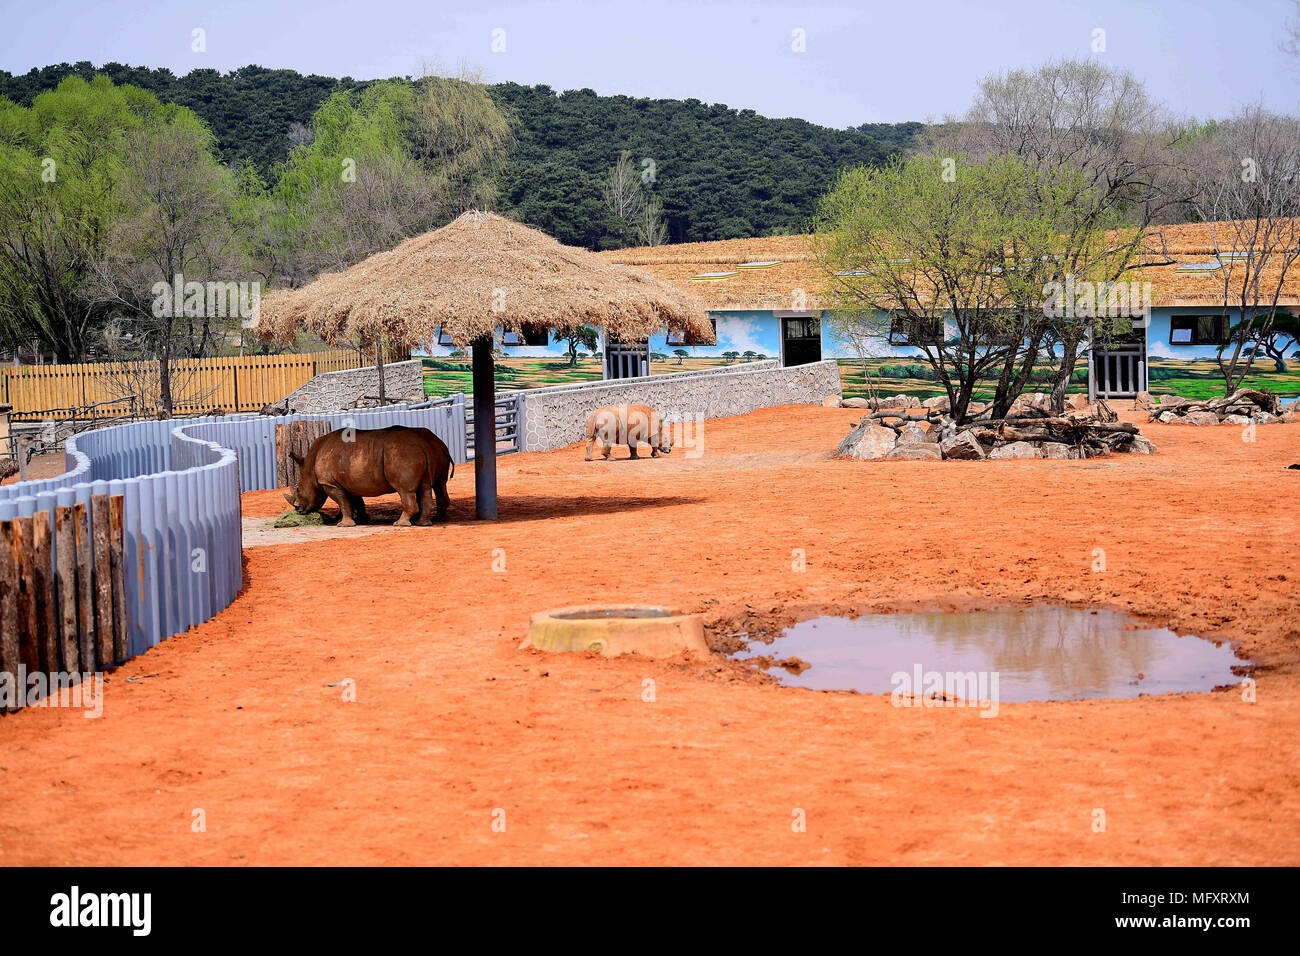 Shenyan, Shenyan, China. 26th Apr, 2018. Shenyang, CHINA-26th April 2018: White rhinos at Shenyang Forest Zoo in Shenyang, northeast China's Liaoning Province, April 26th, 2018. The Northern White Rhino (Ceratotherium simum cottoni) is the rarest and most endangered subspecies, and probably extinct in the wild. Credit: SIPA Asia/ZUMA Wire/Alamy Live News Stock Photo